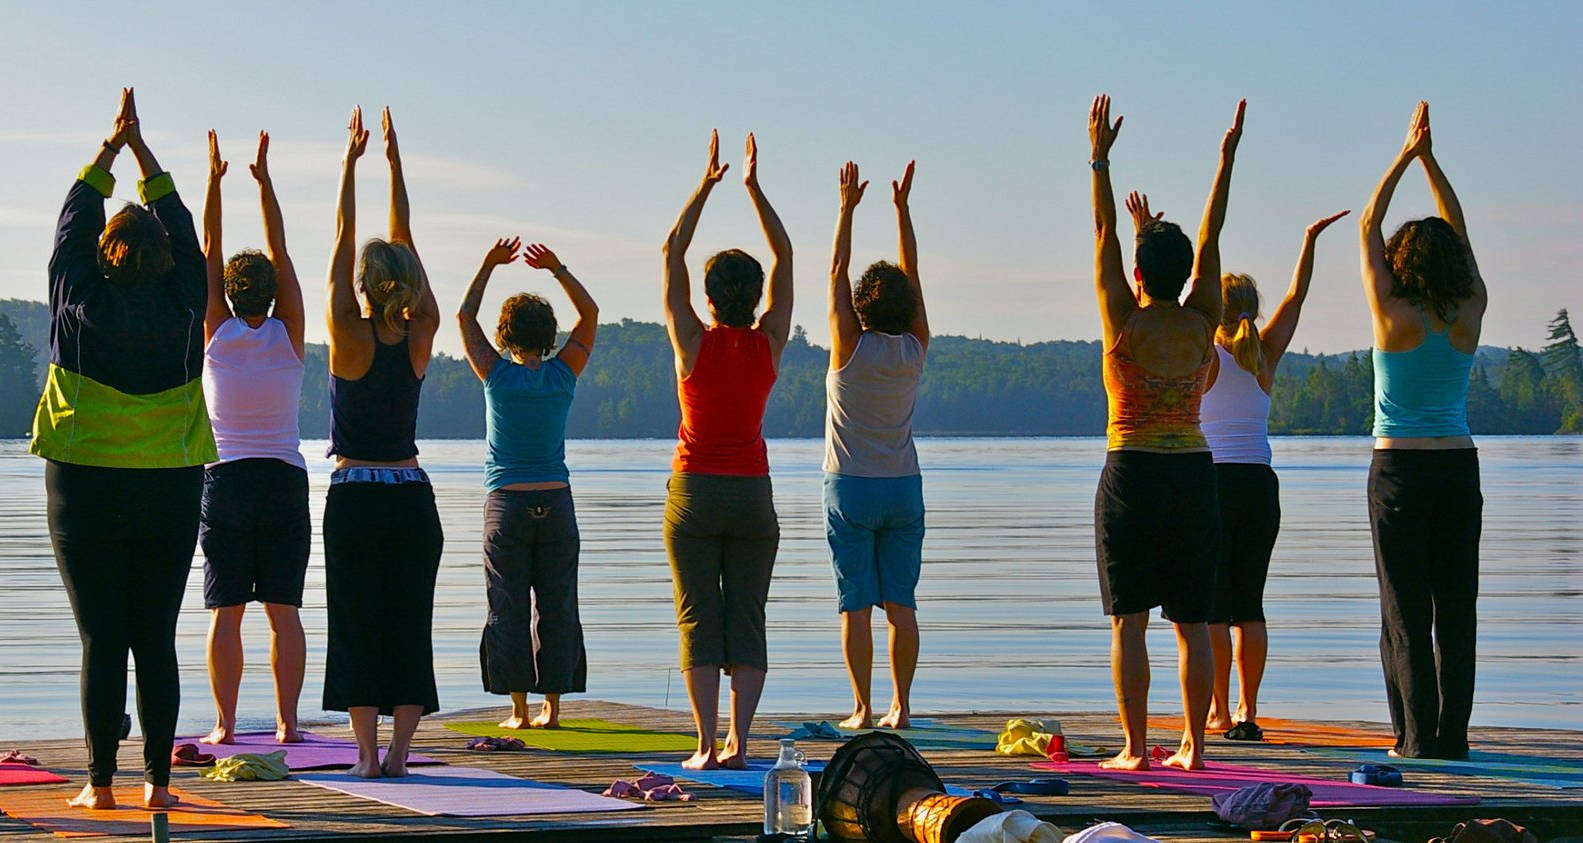 Group yoga class on the dock overlooking the lake